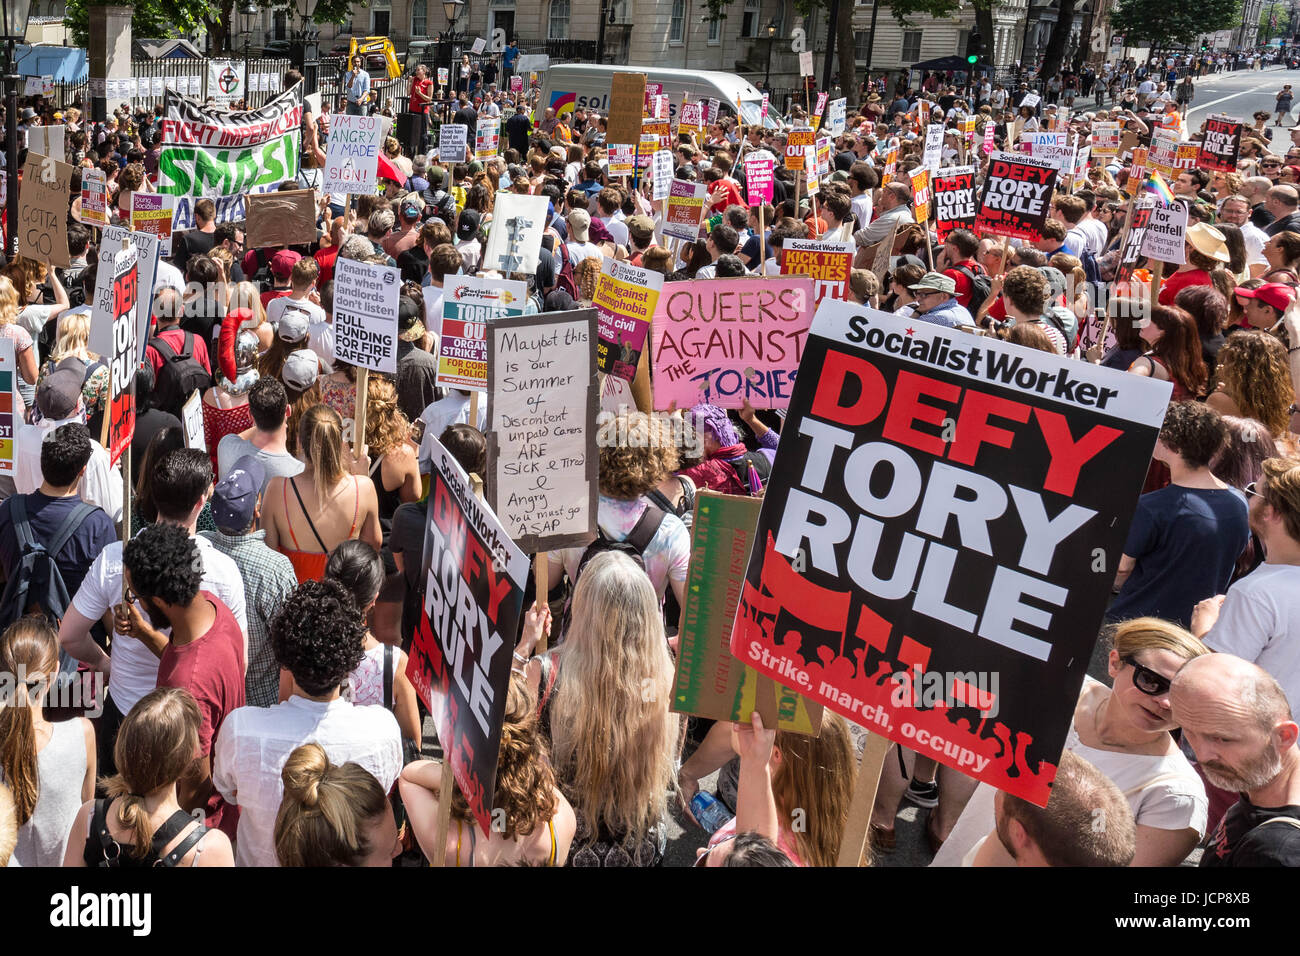 London, UK. 17th June, 2017. Protest opposite Downing Street against PM Theresa May and Tory party DUP coalition - Stock Image